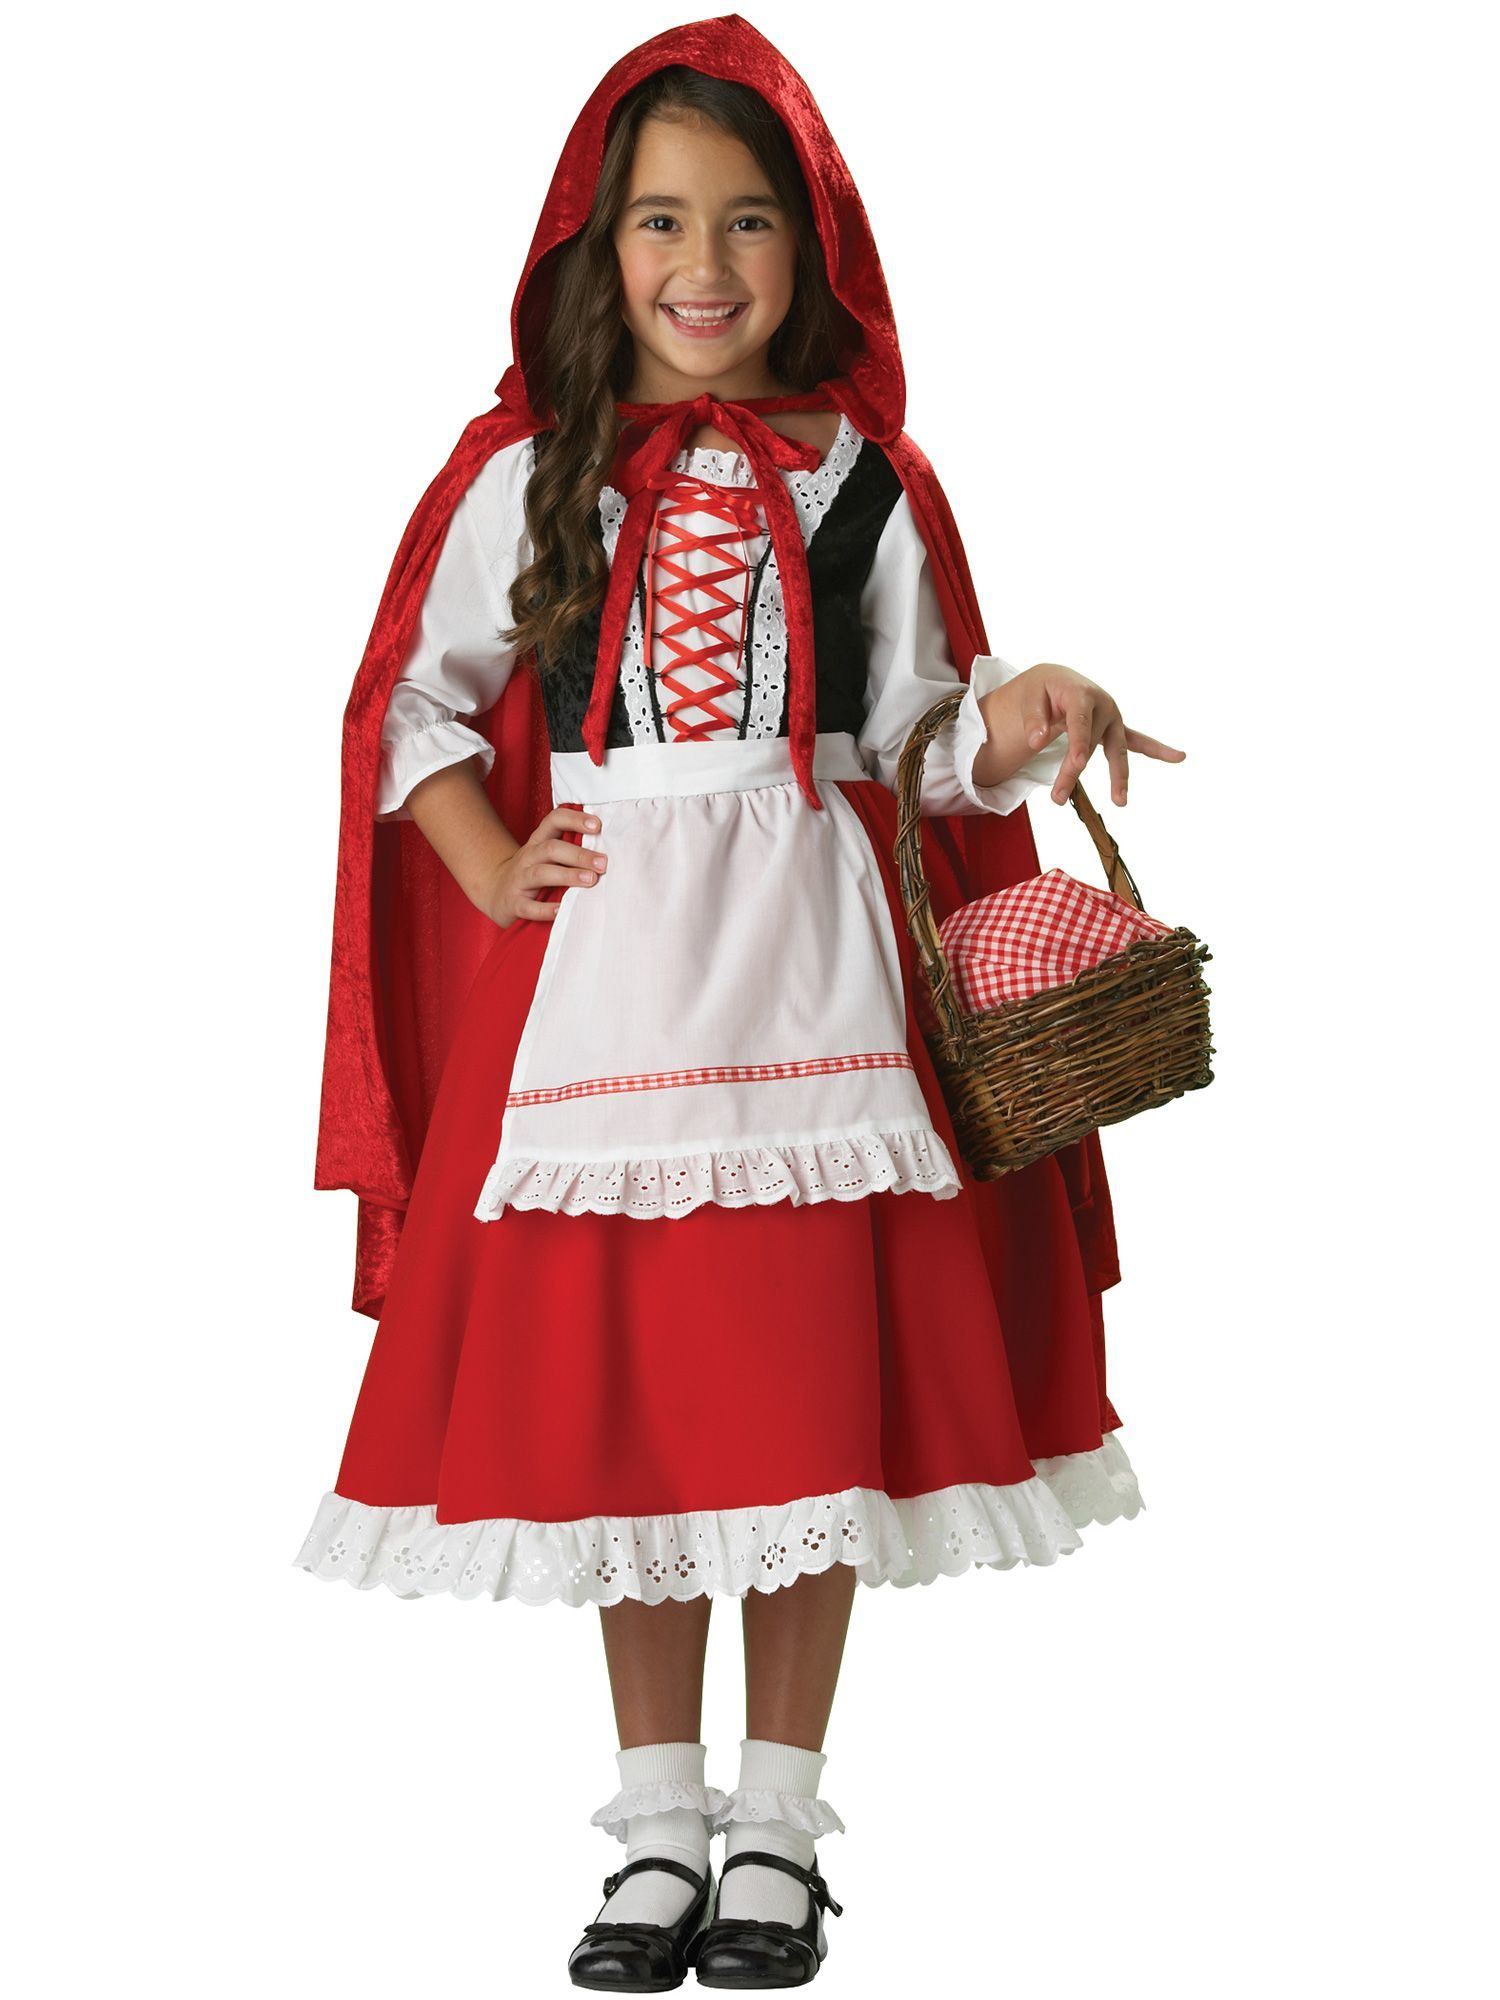 Elite Little Red Riding Hood Child Costume - Girls Costumes for 2019 - Wholesale Halloween Costumes